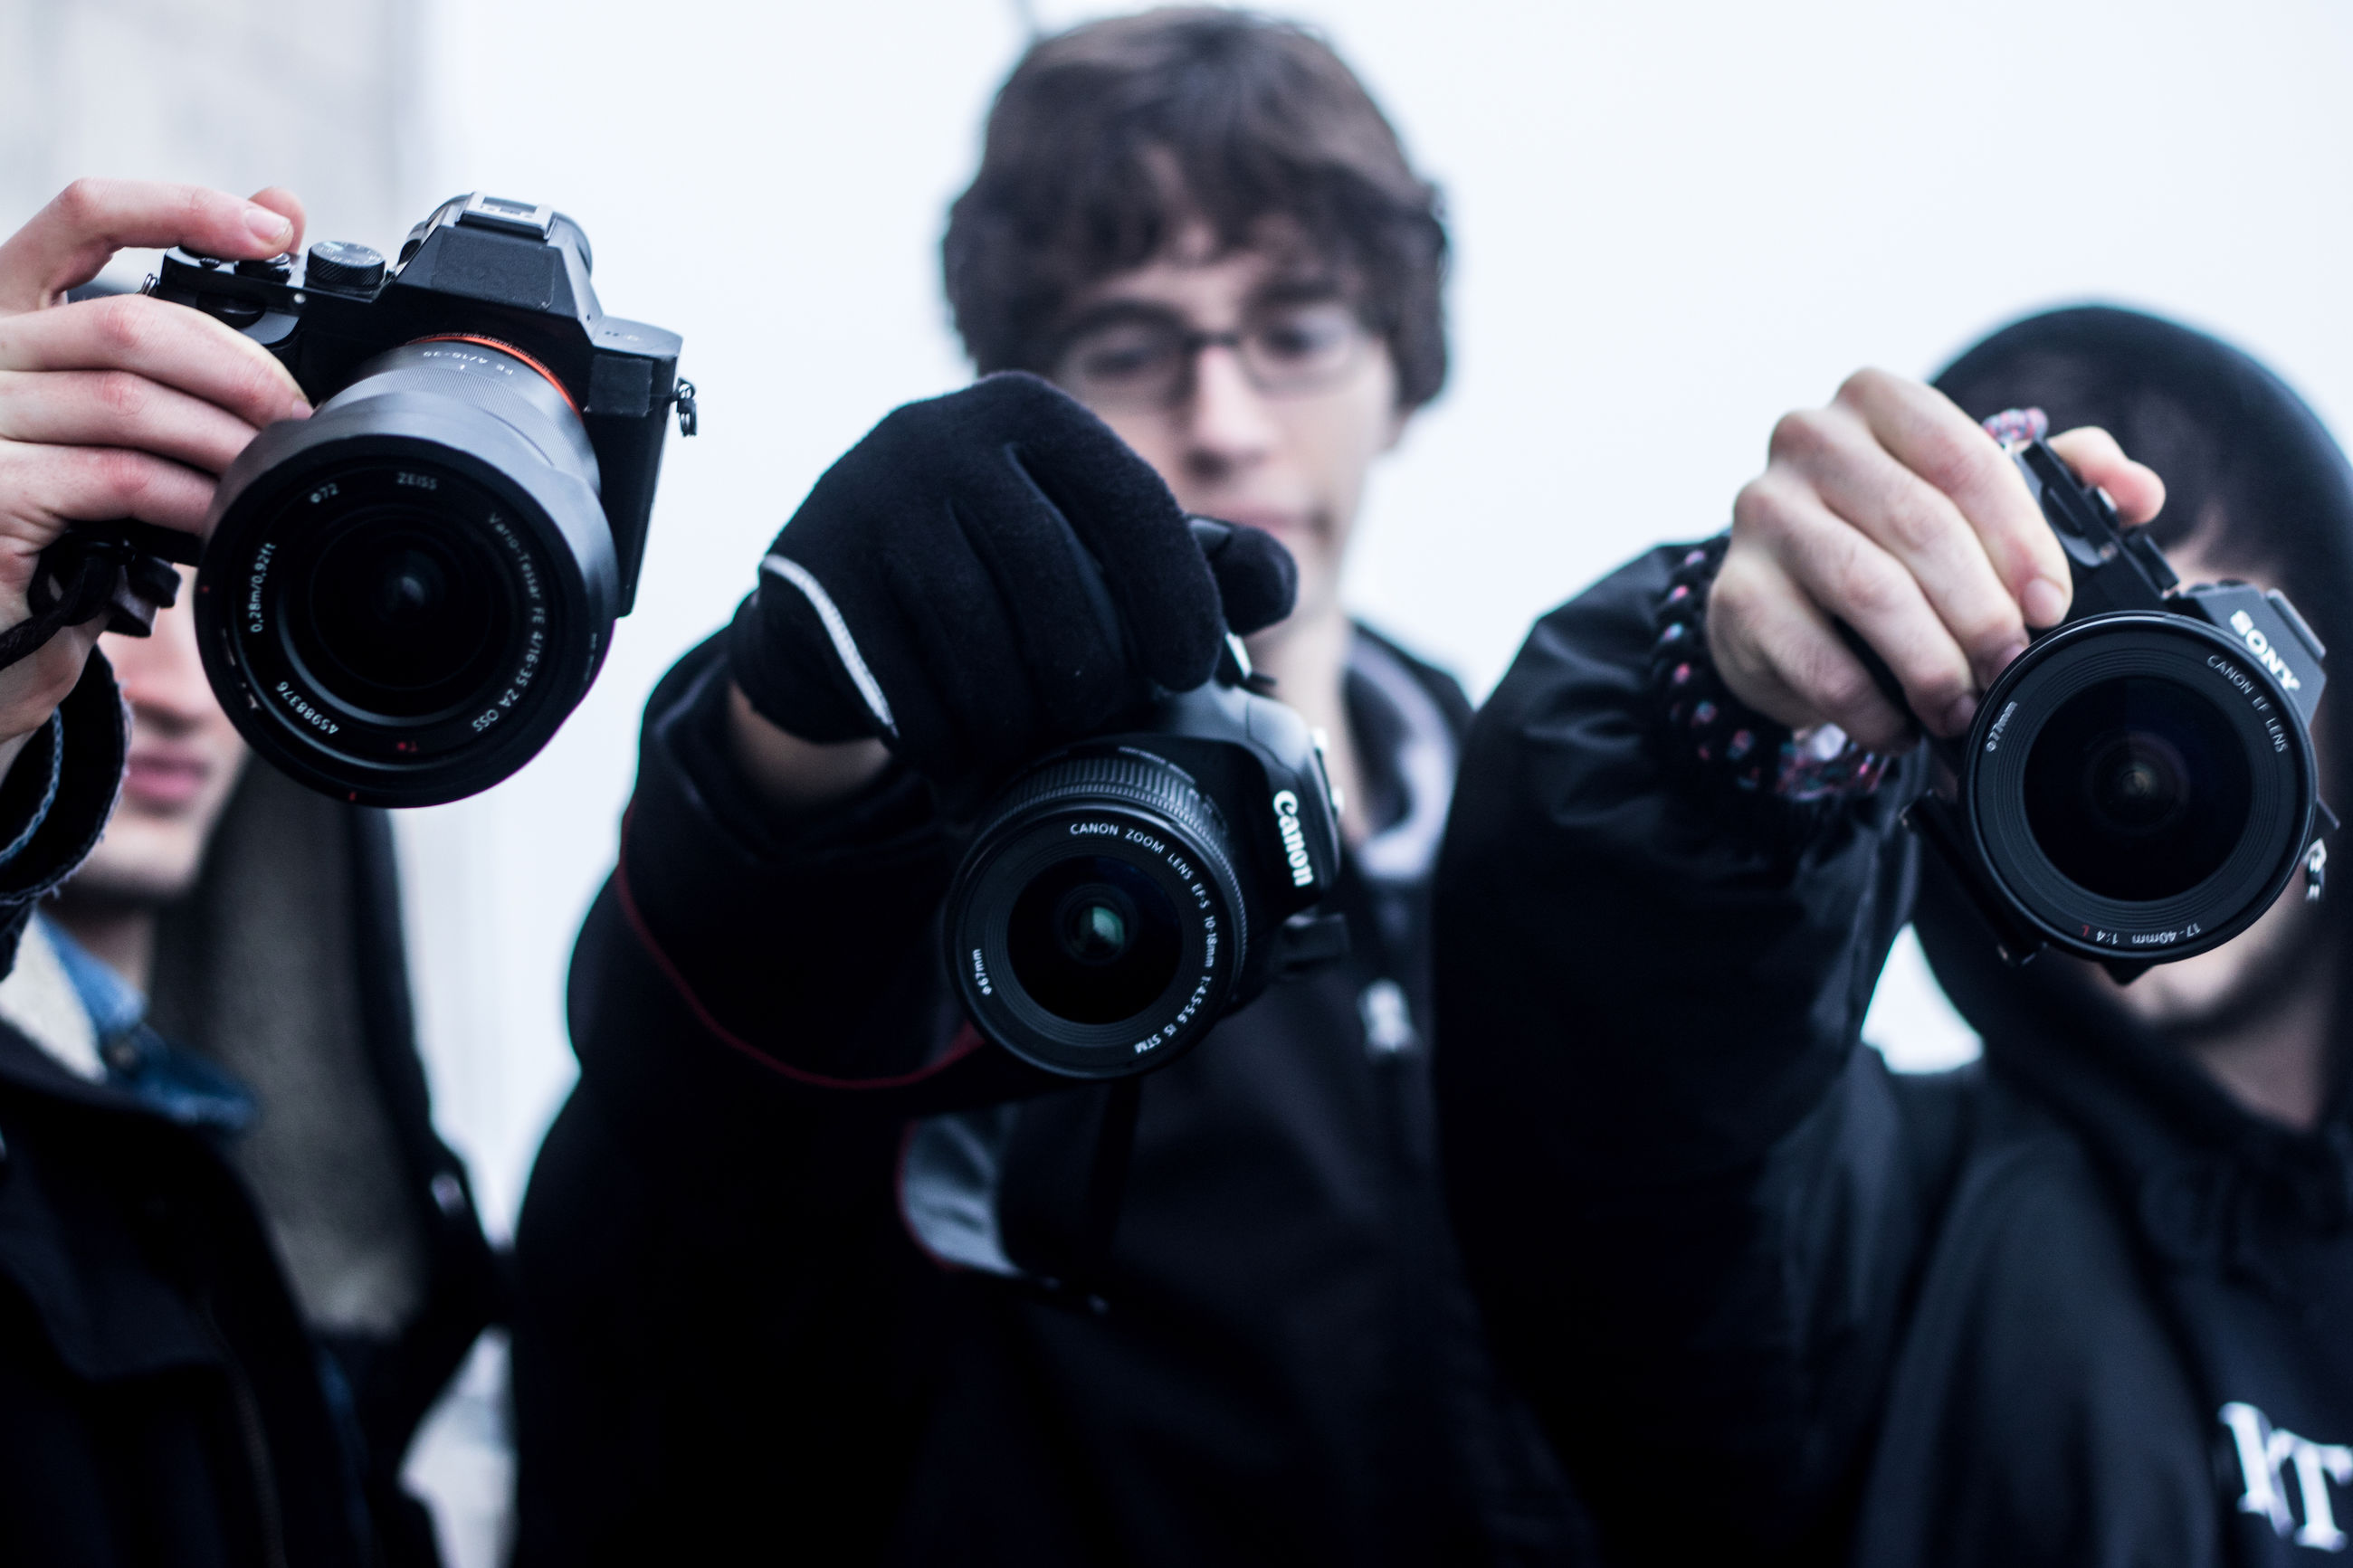 photography themes, holding, technology, photographing, lifestyles, camera - photographic equipment, person, leisure activity, wireless technology, digital camera, men, mobile phone, smart phone, indoors, communication, part of, photographer